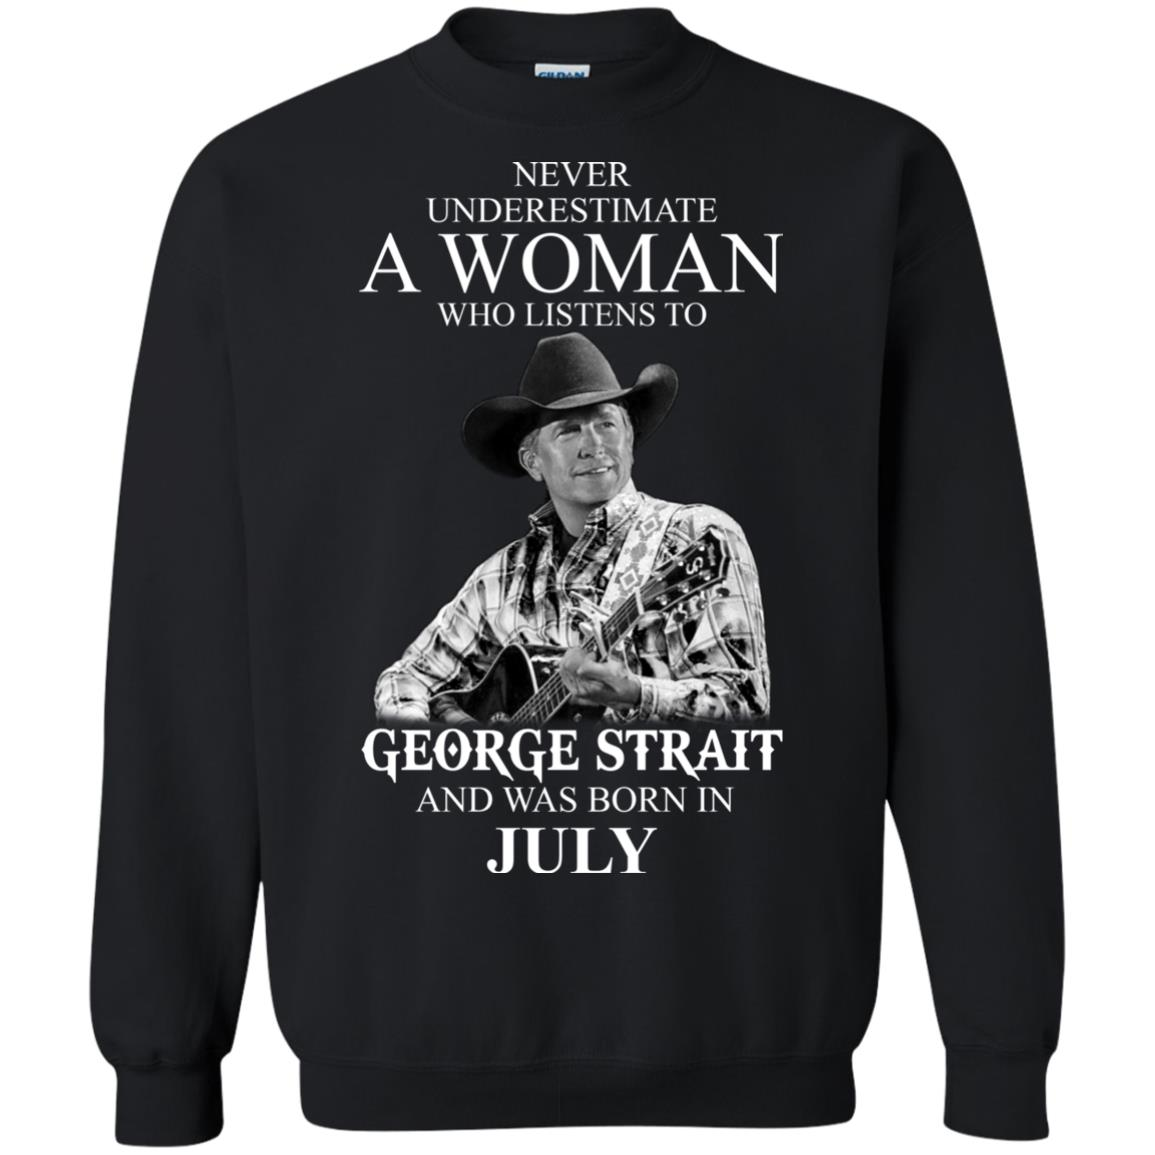 image 404 - Never Underestimate A Woman Who Listens To George Strait And Was Born In July shirt